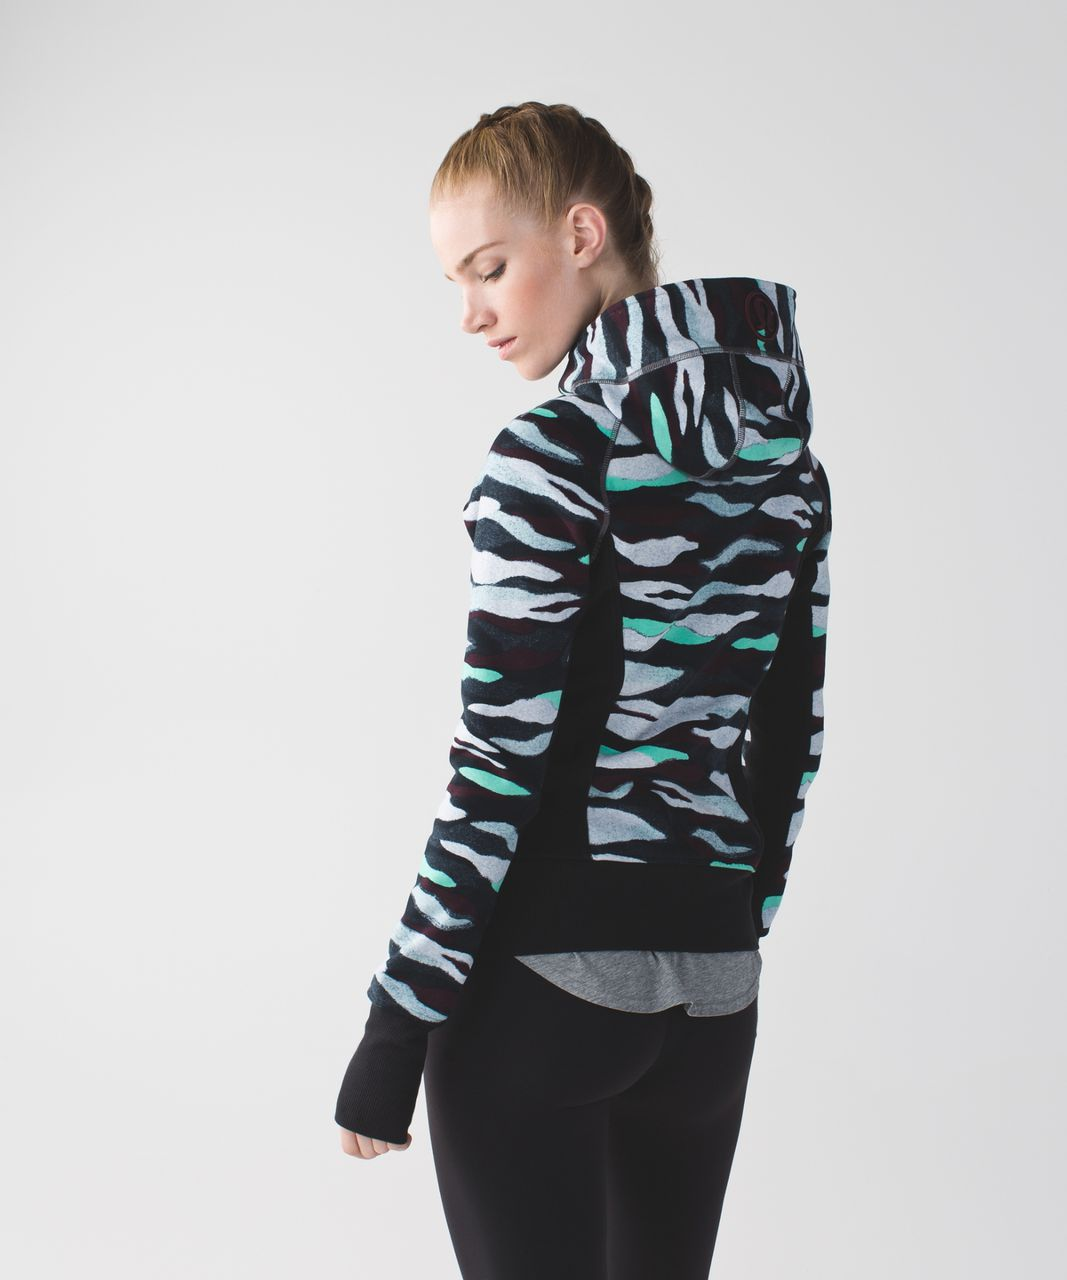 Lululemon Scuba Hoodie II - Mini Coast Camo Multi / Black